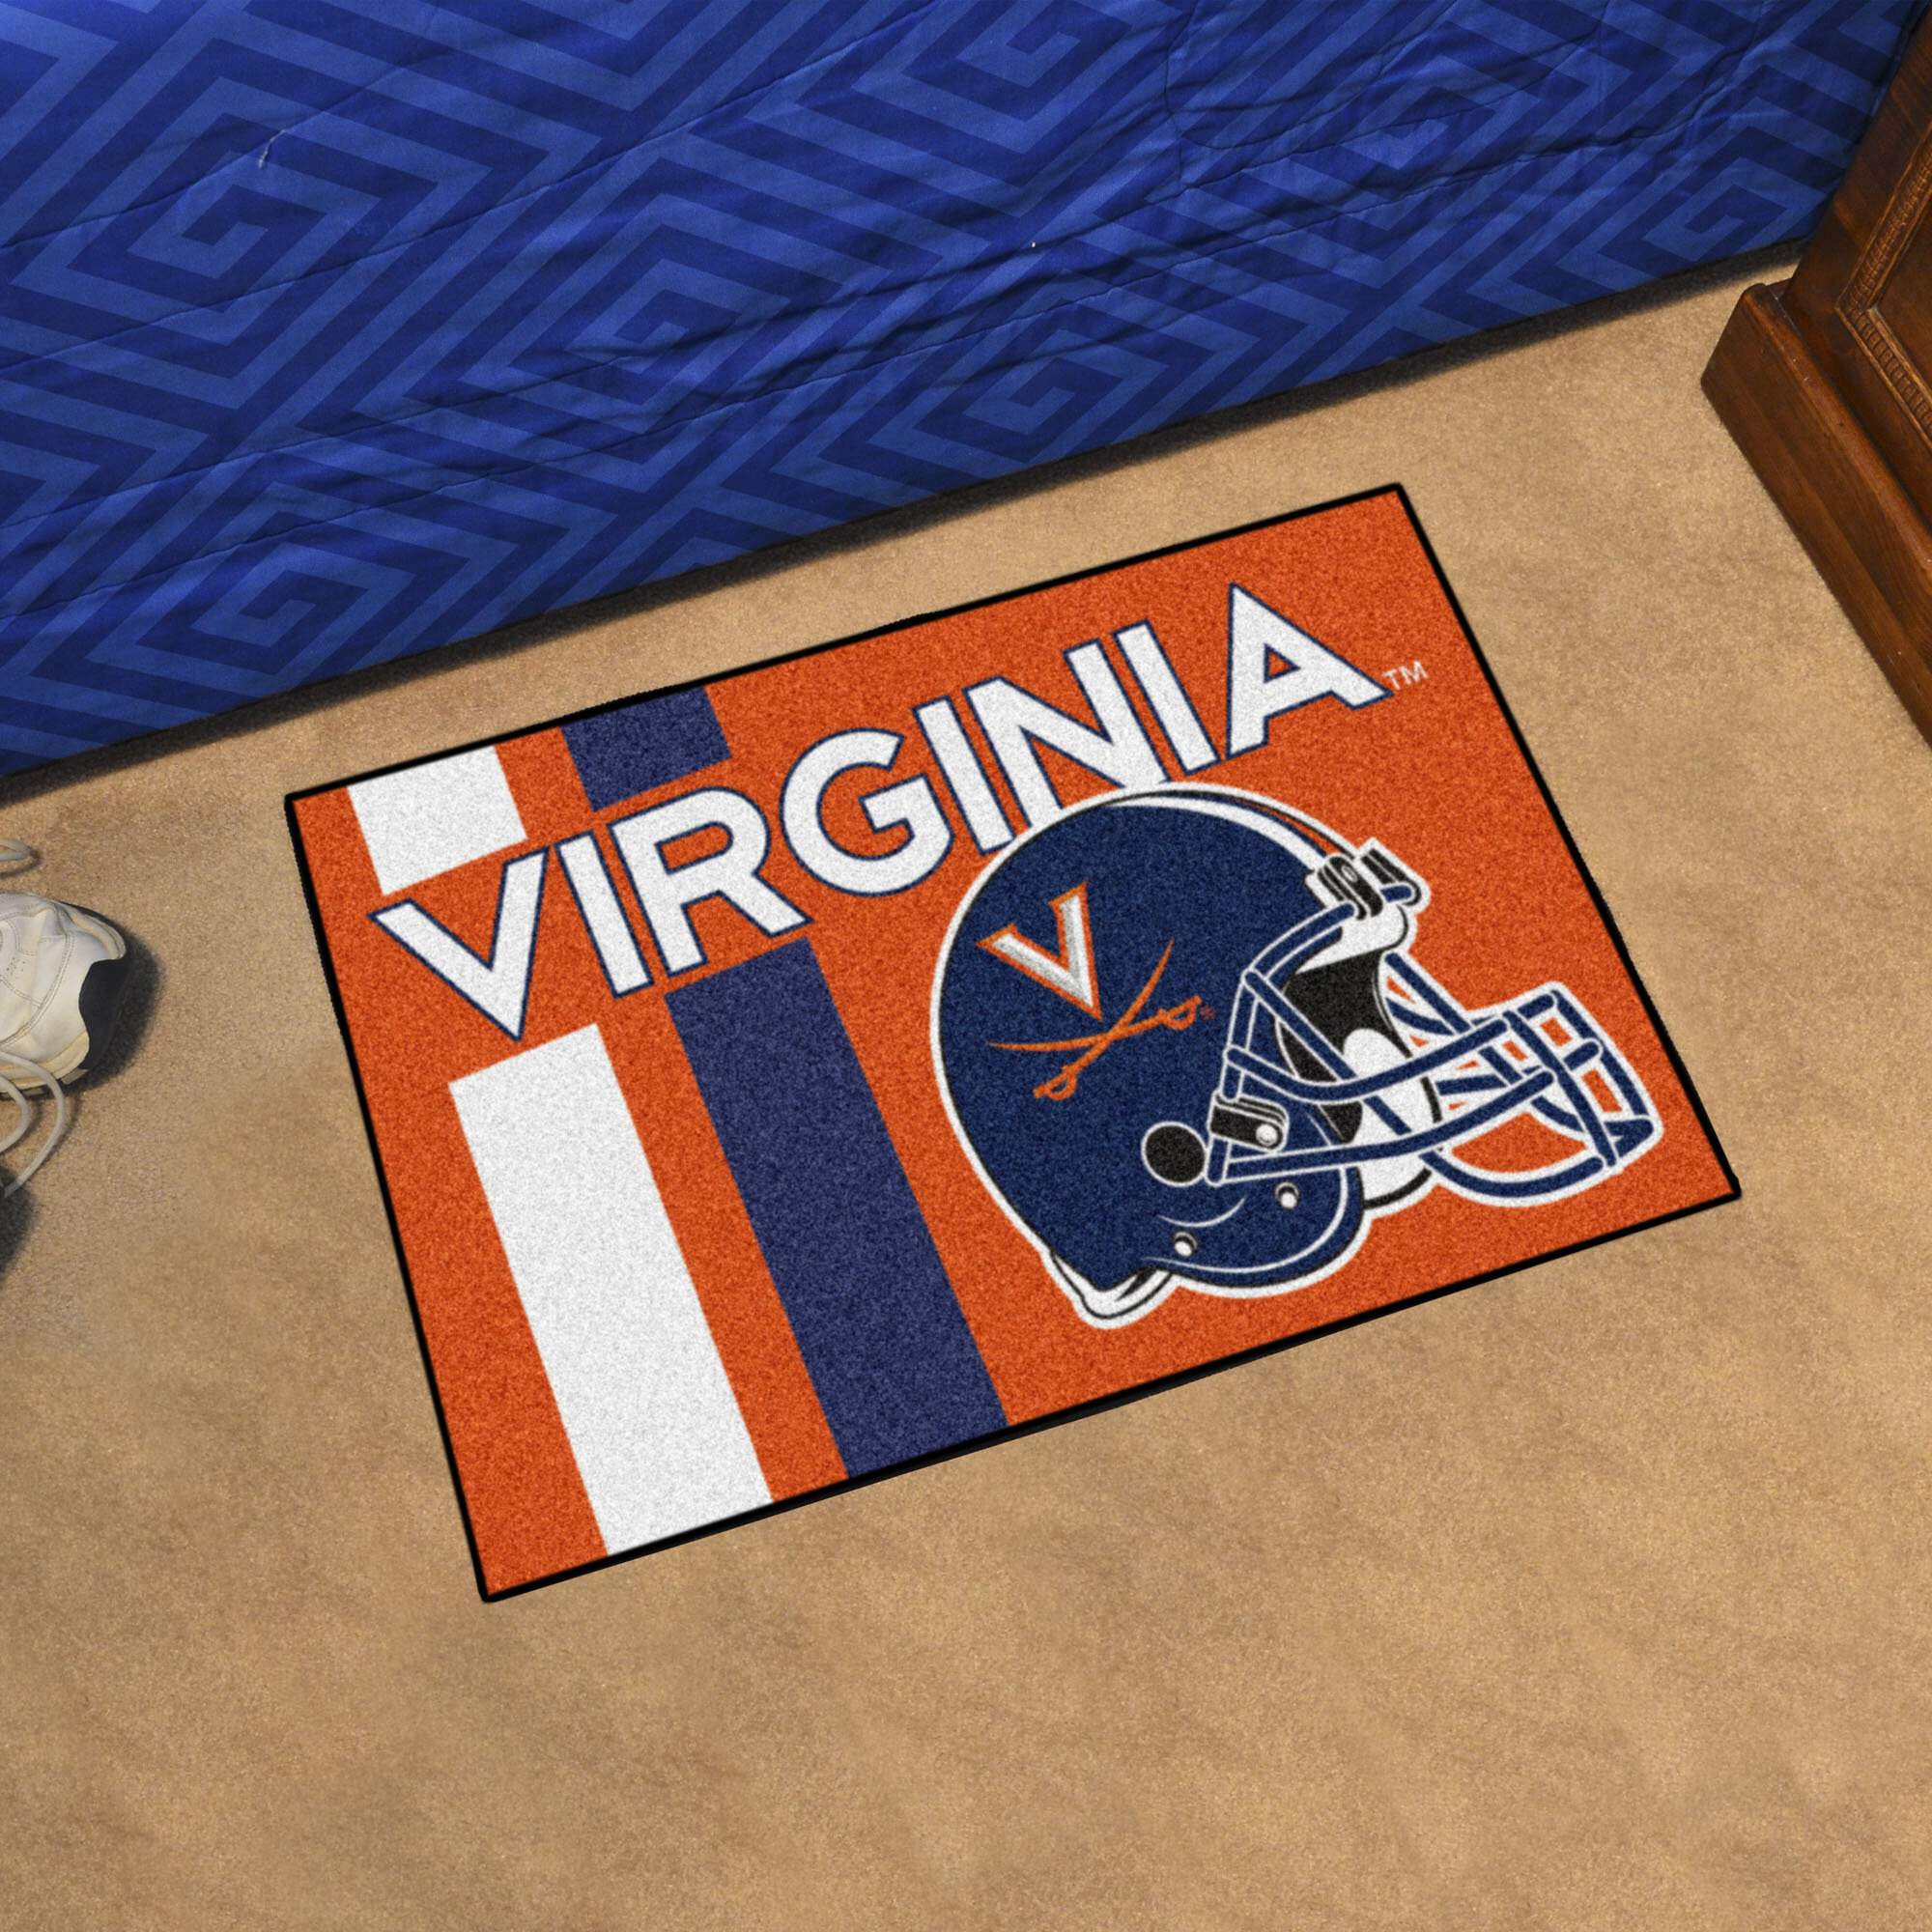 Fanmats Ncaa University Of Virginia Starter 30 In X 19 In Non Slip Indoor Only Mat Wayfair